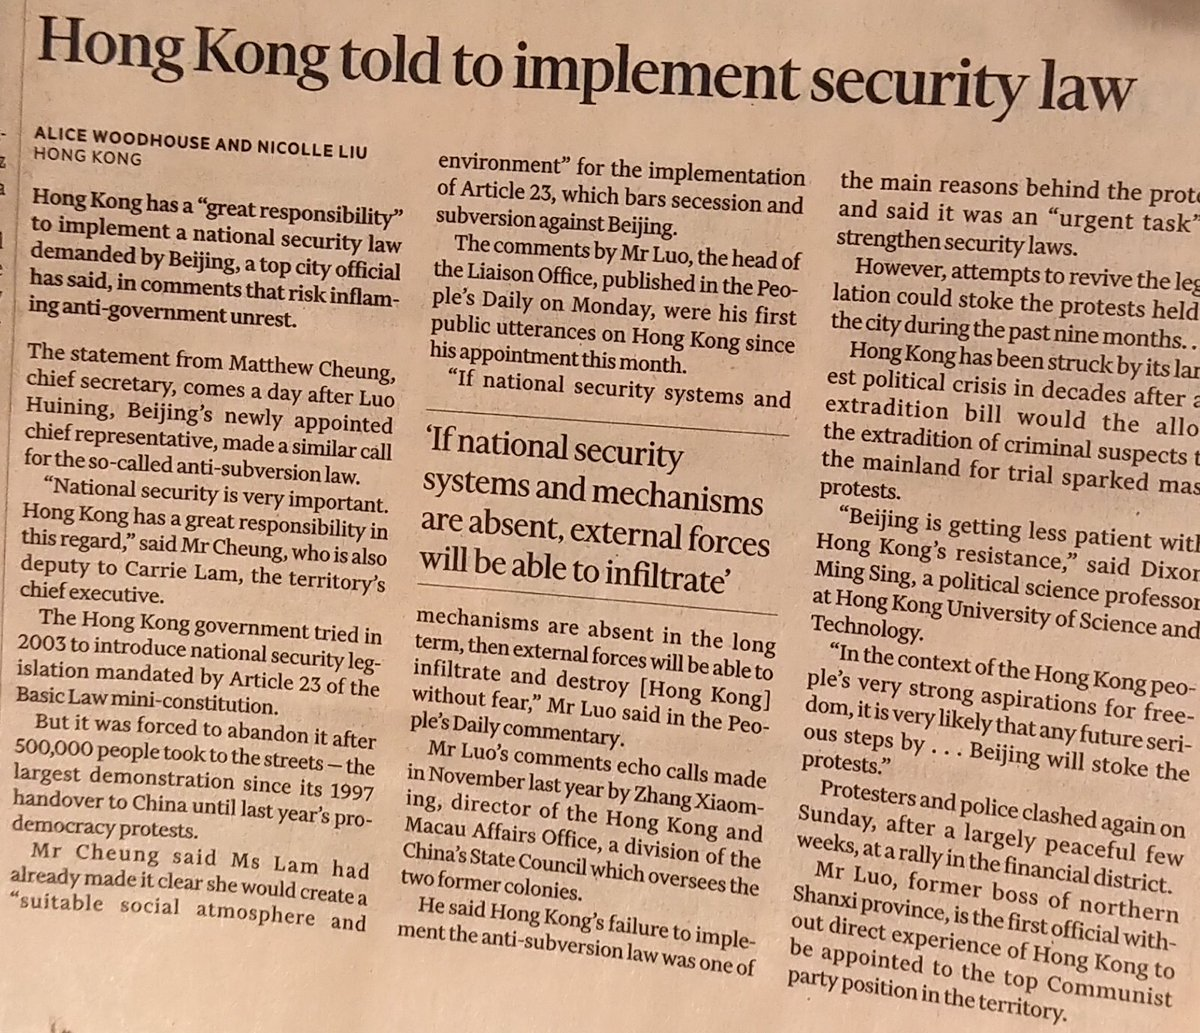 #HongKong has been told by #CCP to implement a new #SecurityLaw to make even easier violent  repression of protests by the local Police.The #IndependentInvestigation  on #PoliceViolence is urgently needed.@GlobalCRL @joshuawongcf @demosisto<br>http://pic.twitter.com/TR5j4EpKtz